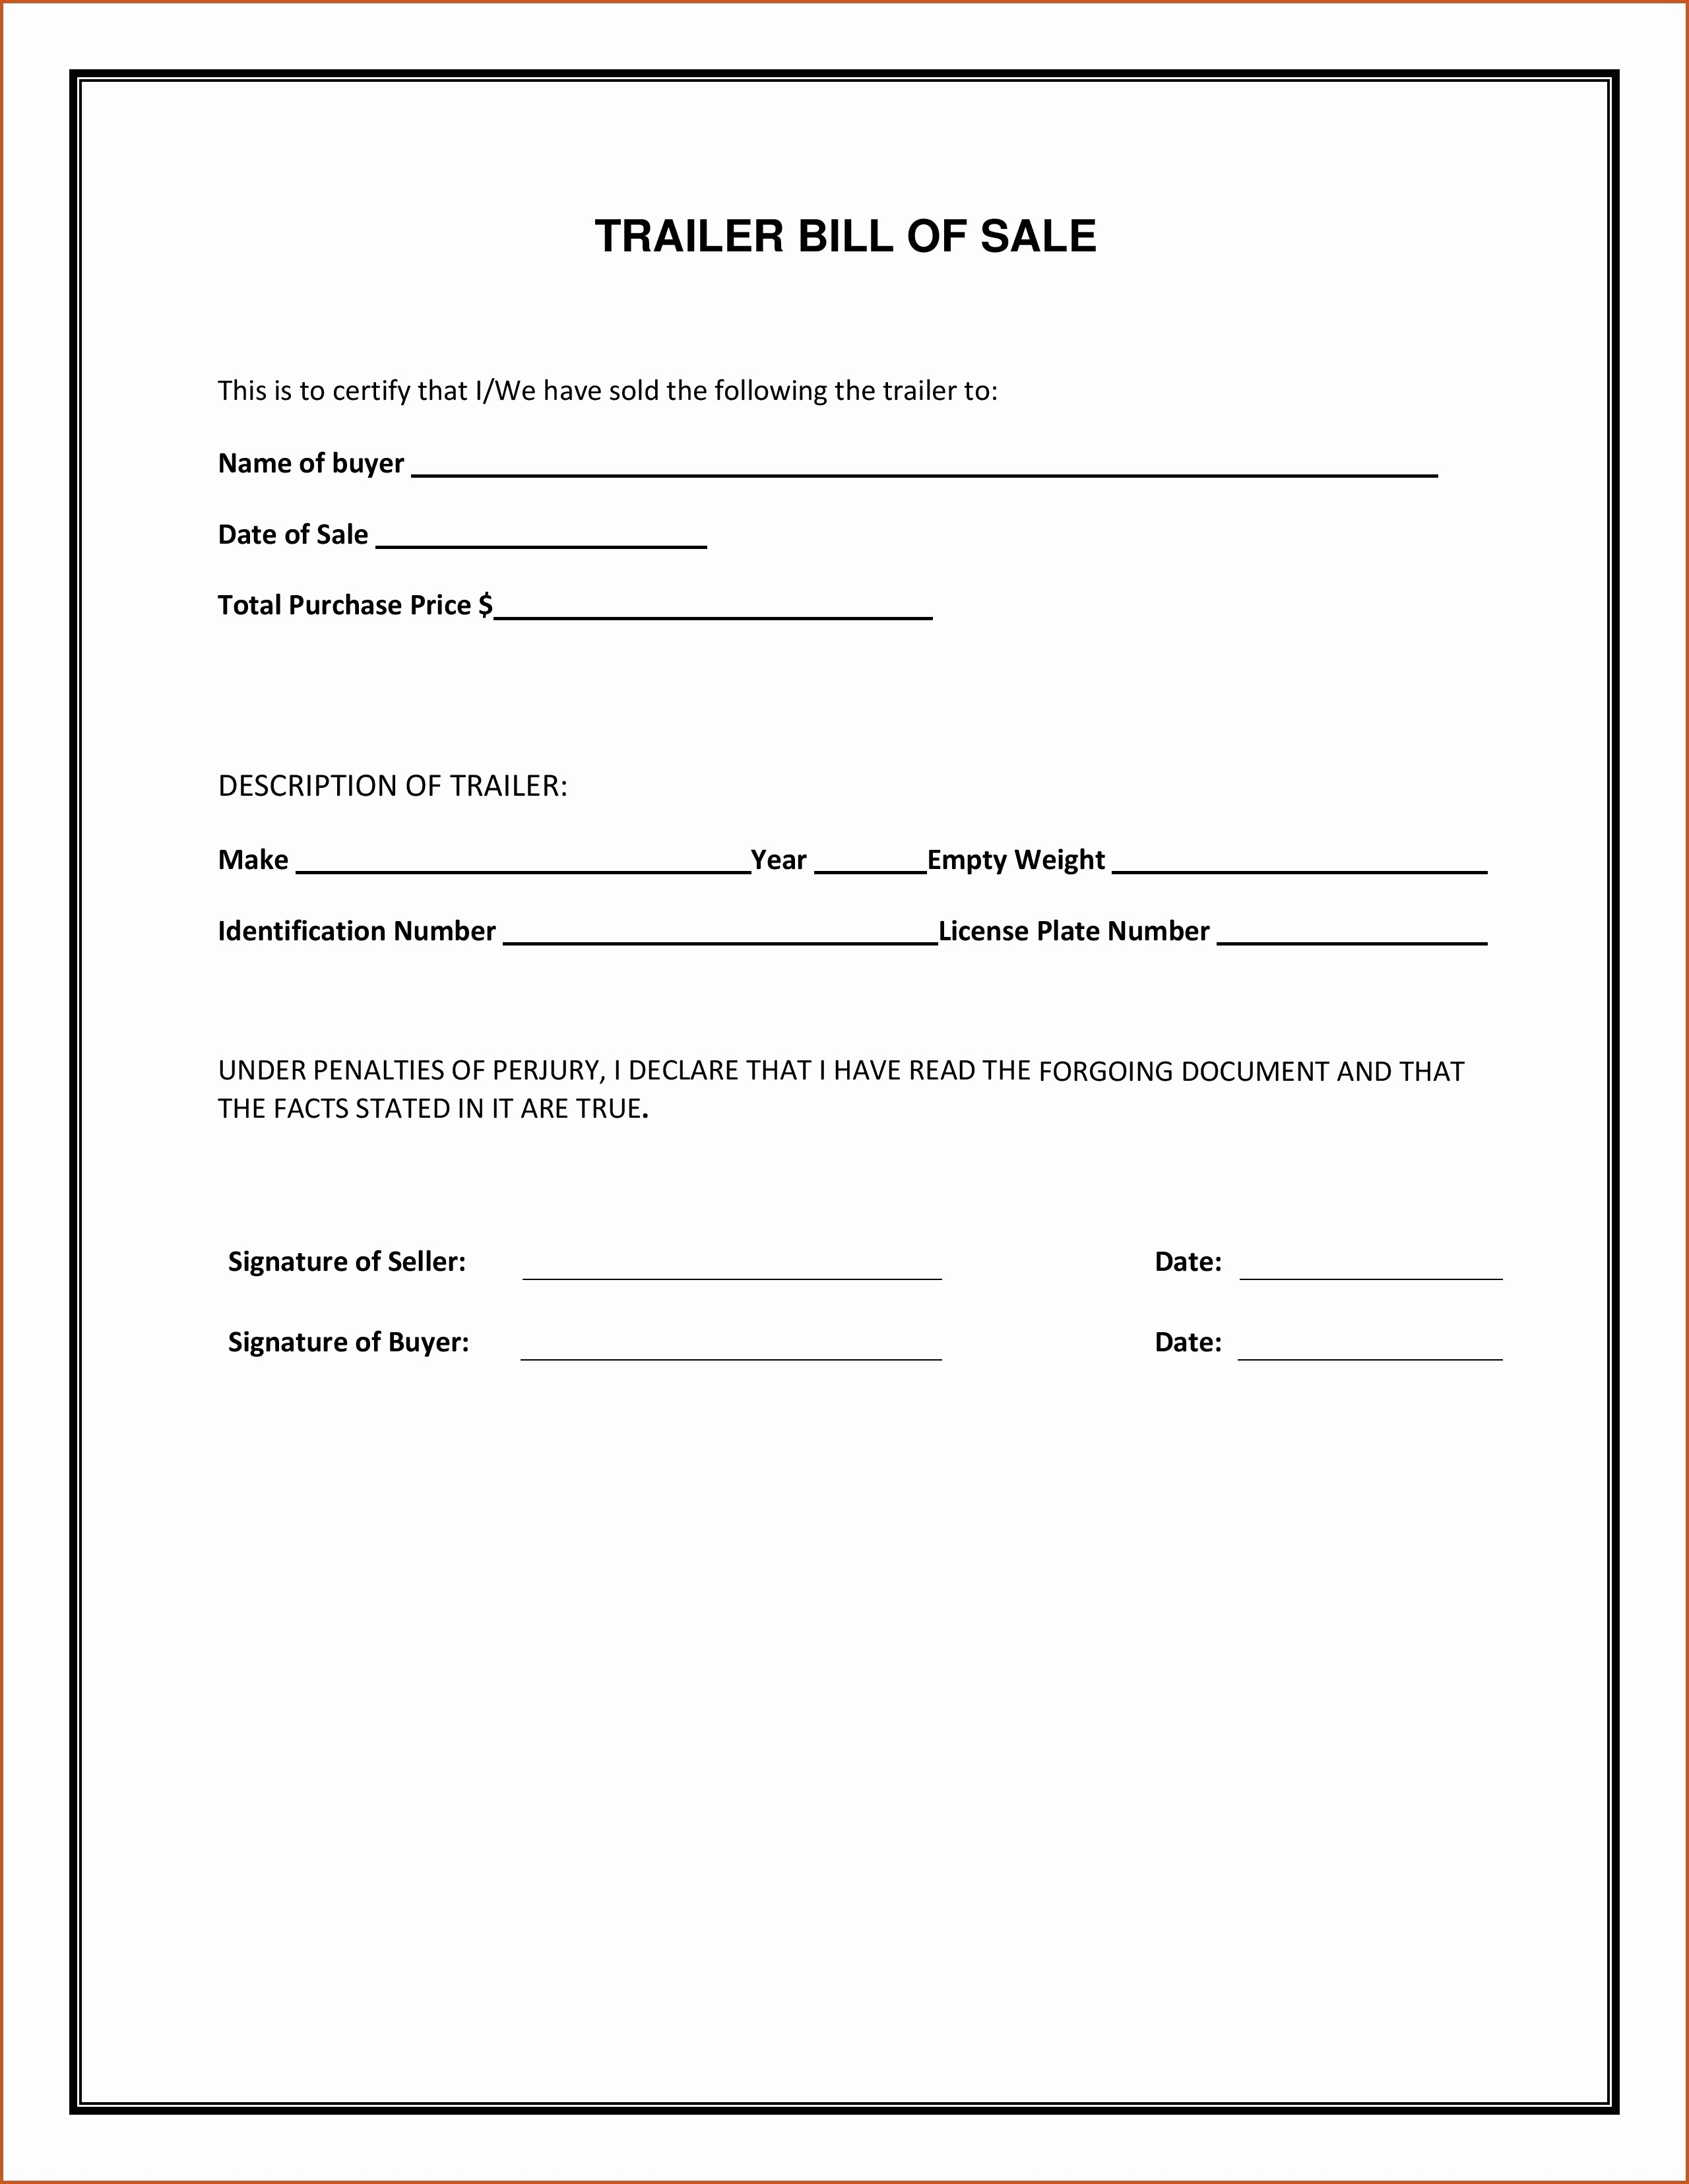 Bill Of Sale Florida Vehicle New Sample Bill Sale Printable for Rv form forms and